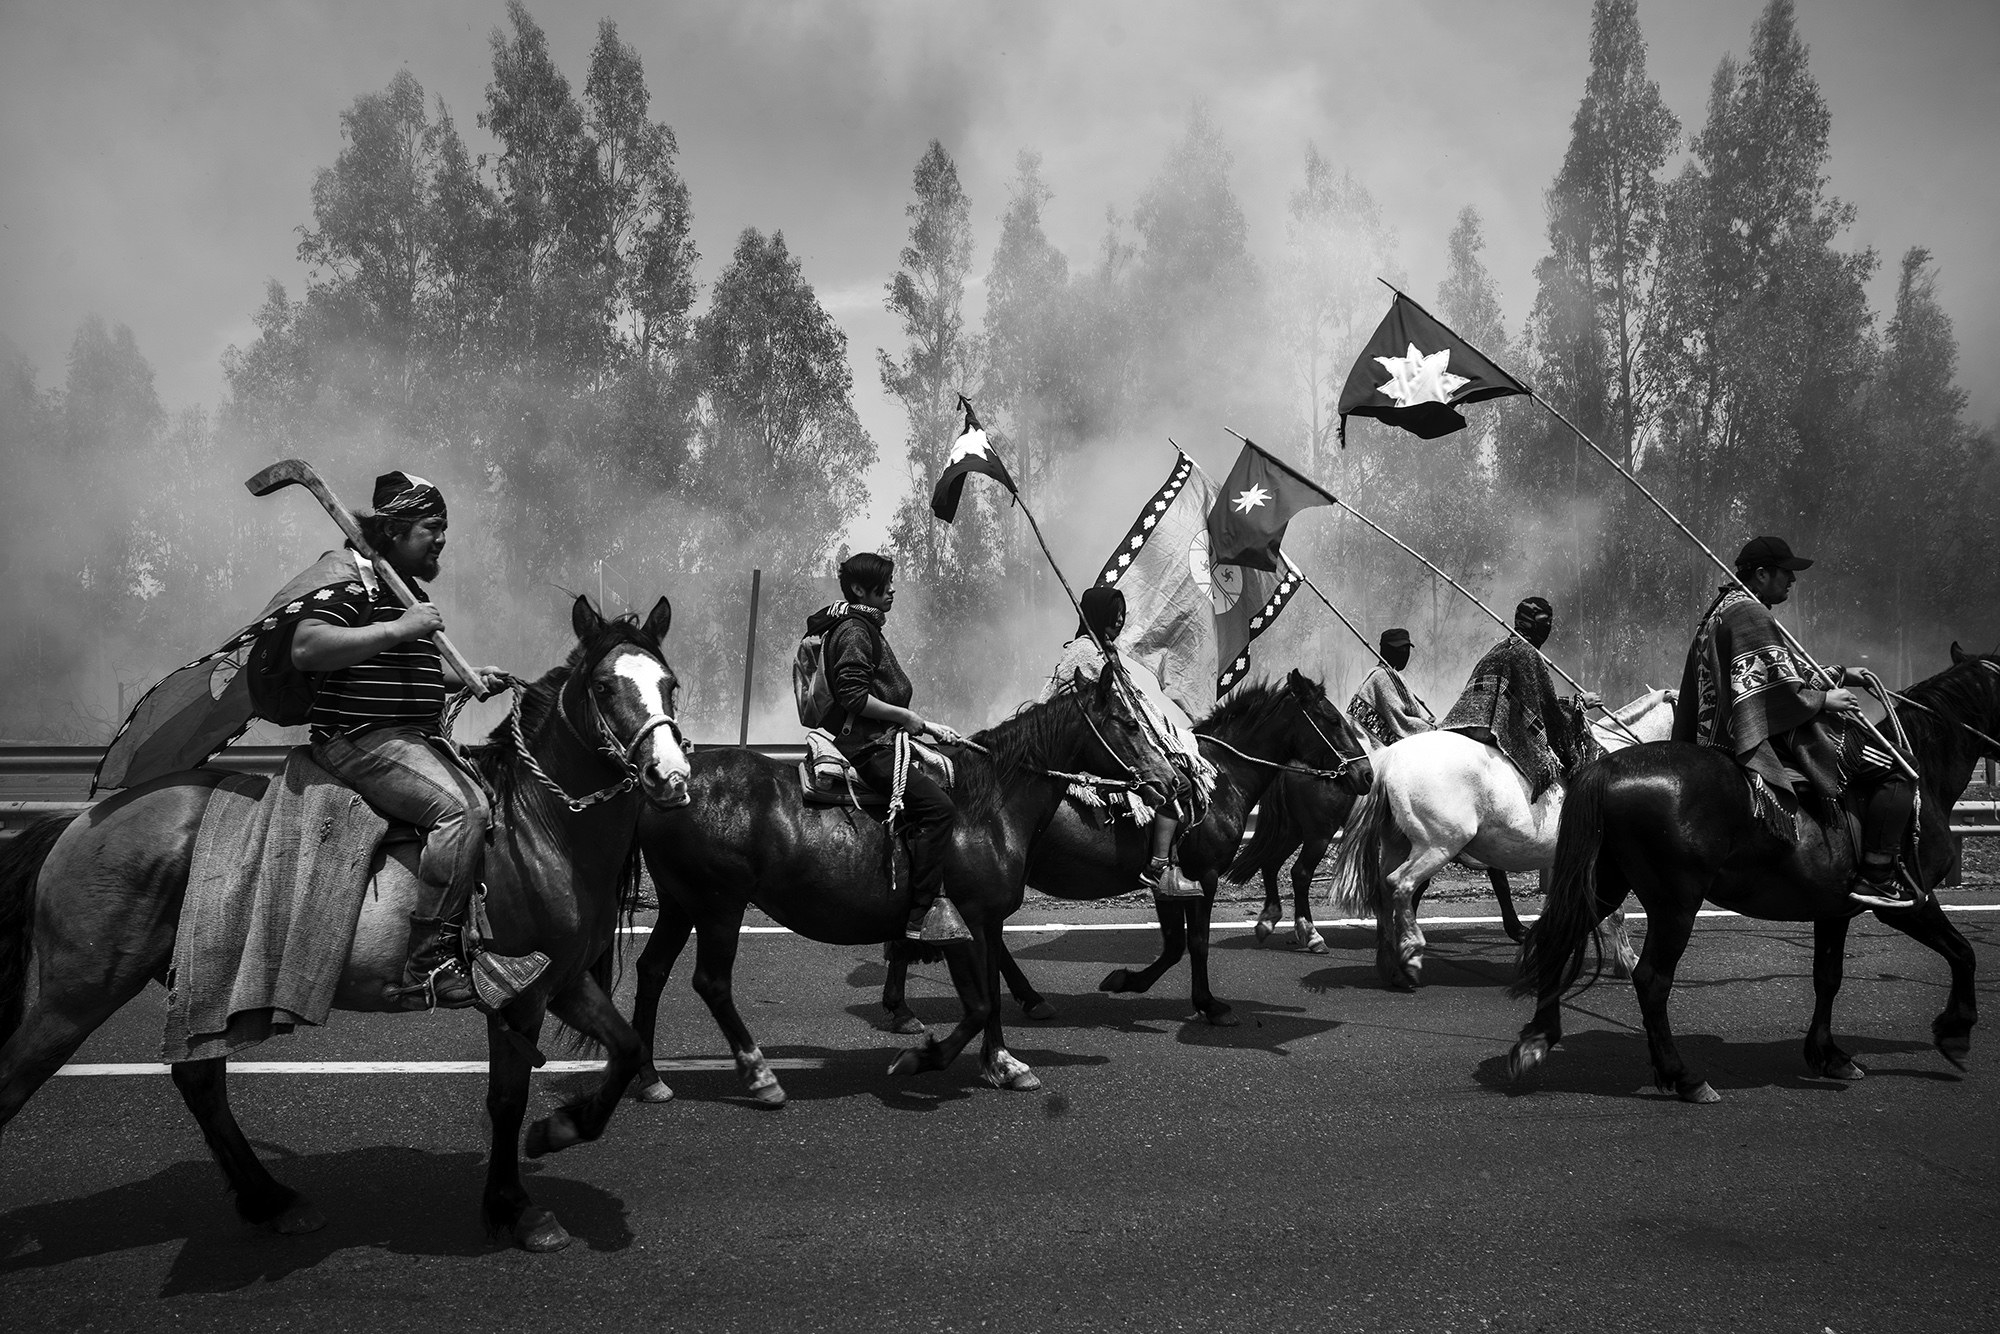 People ride horses and carry flags